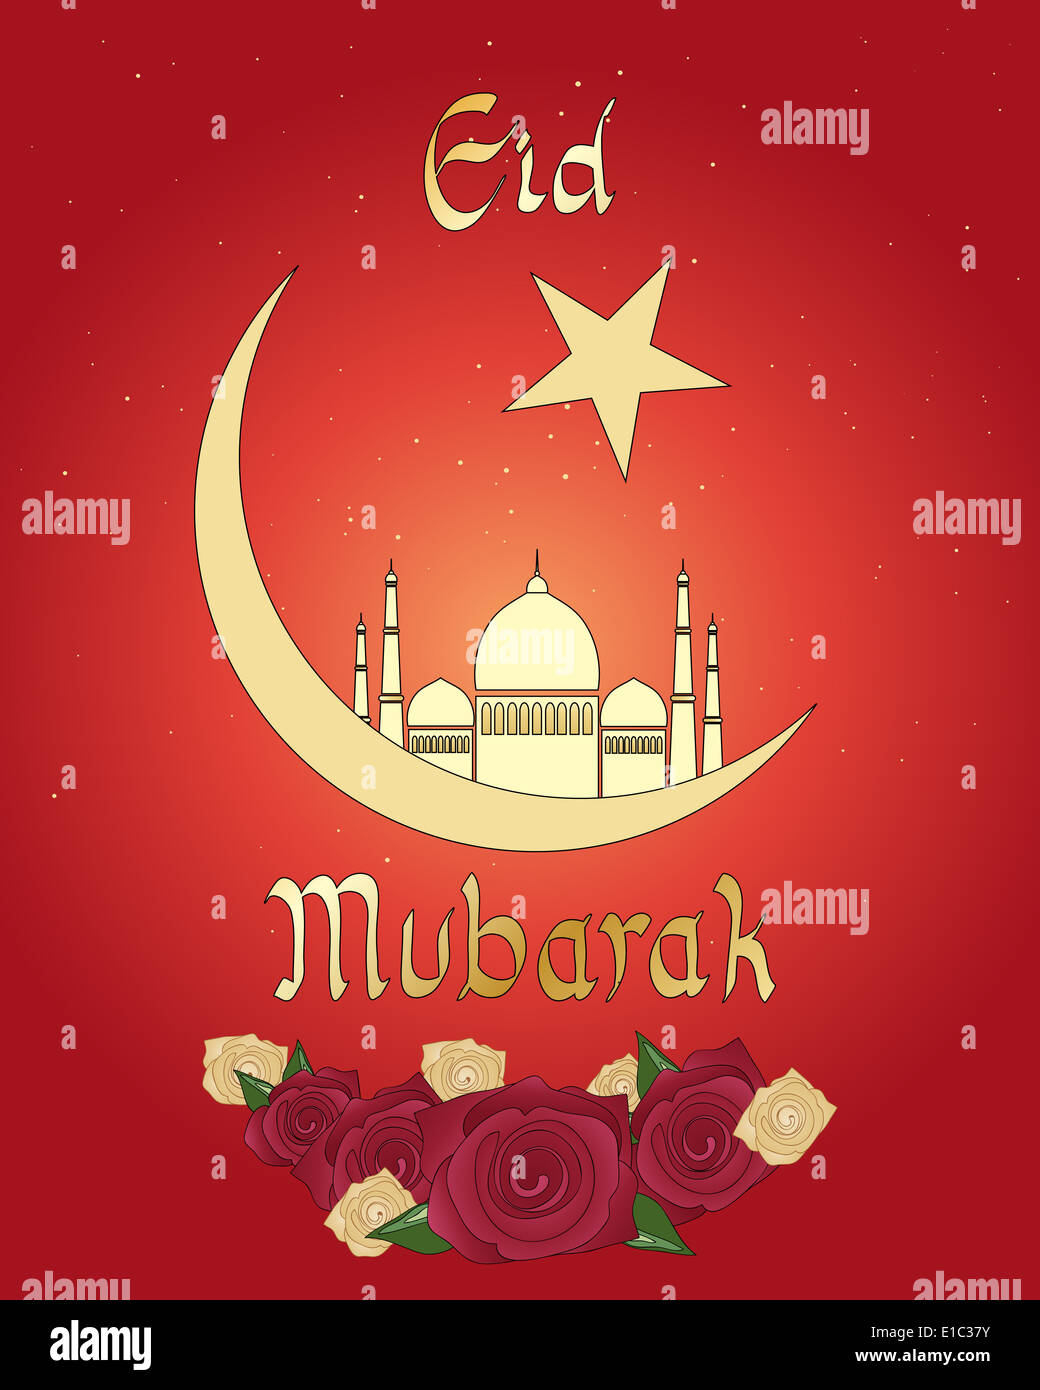 An illustration of an eid greeting card with islamic crescent moon an illustration of an eid greeting card with islamic crescent moon mosque and roses on a red background kristyandbryce Choice Image